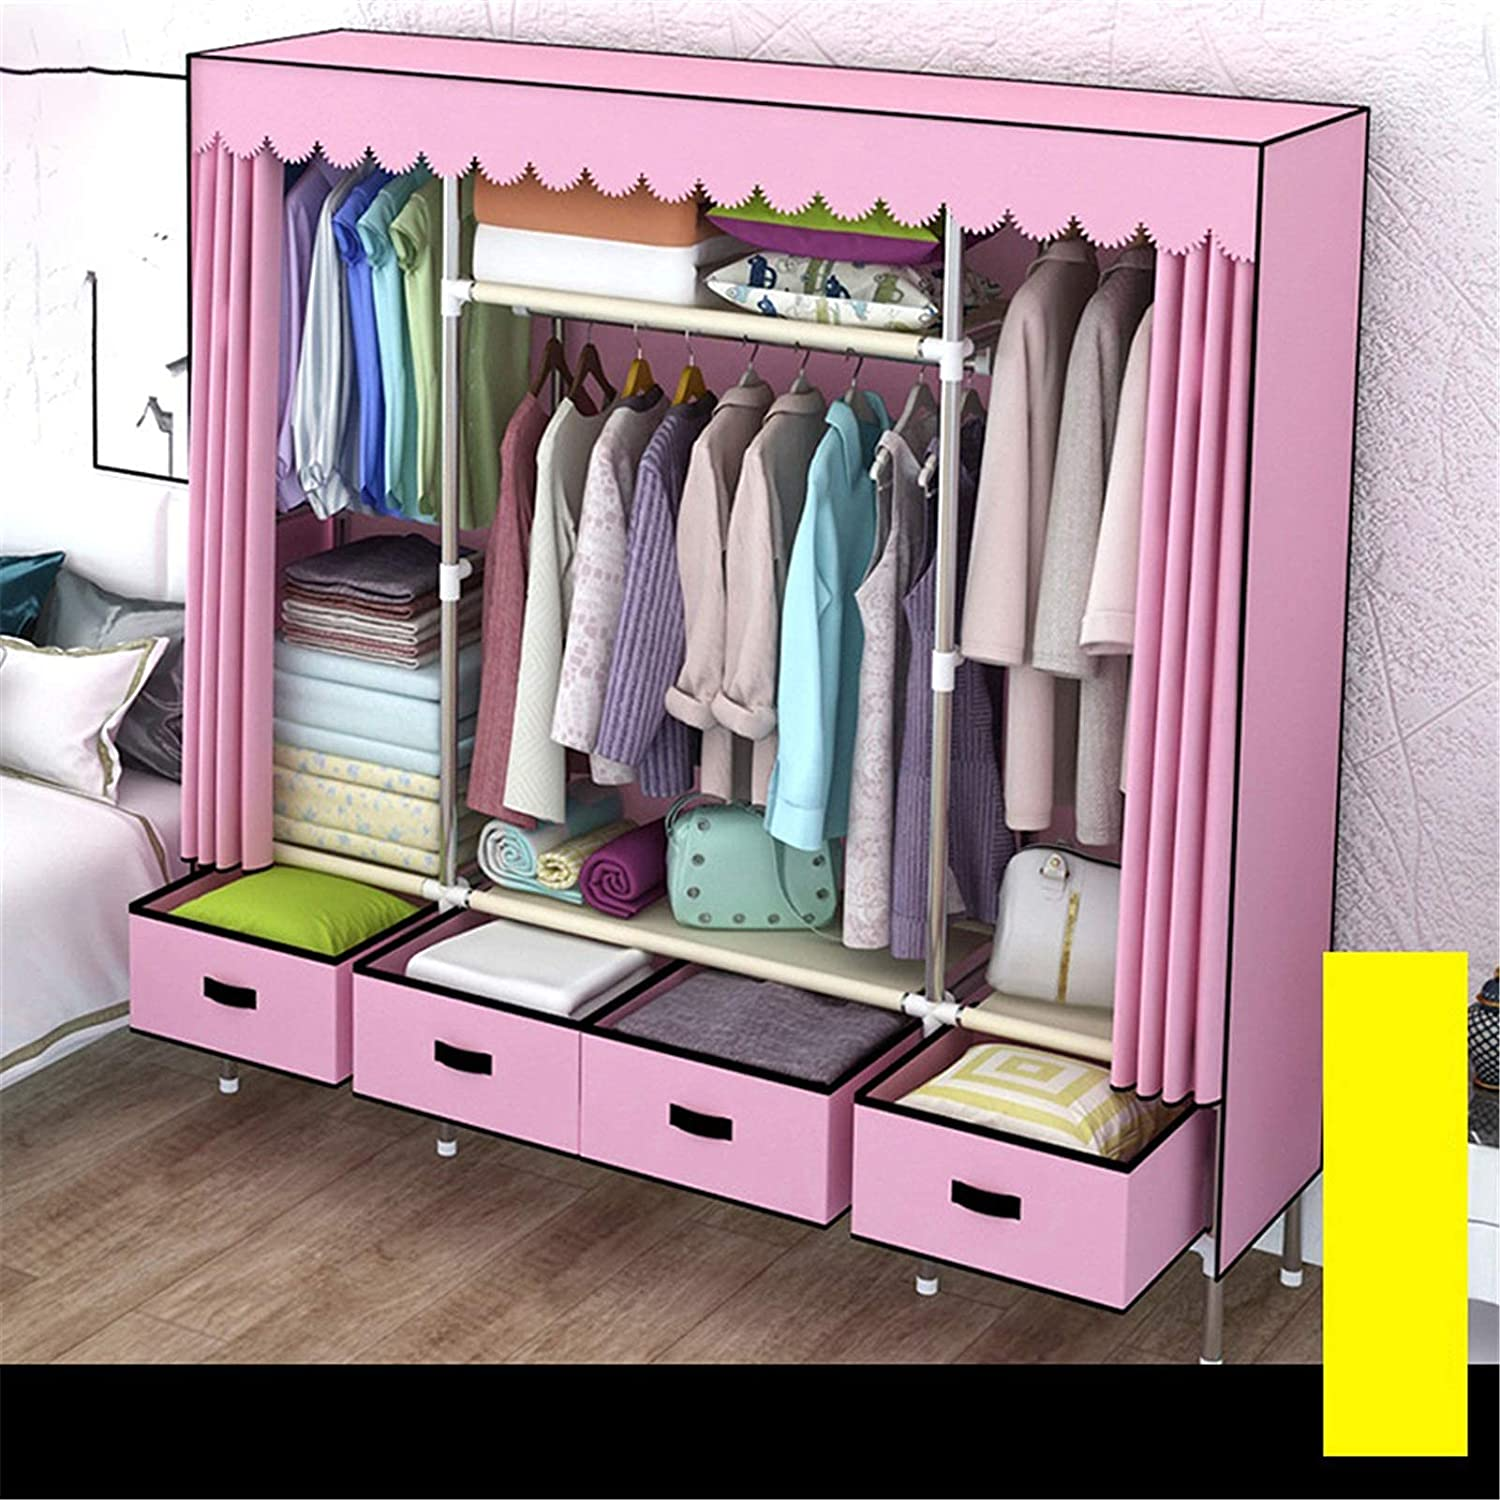 N/Z Home Equipment Canvas Wardrobe Portable Clothes Closet Wardrobe with Hanging Rack Non-Woven Fabric Storage Organizer with 5 Drawers (Color : Blue Size : 170x168x45cm)